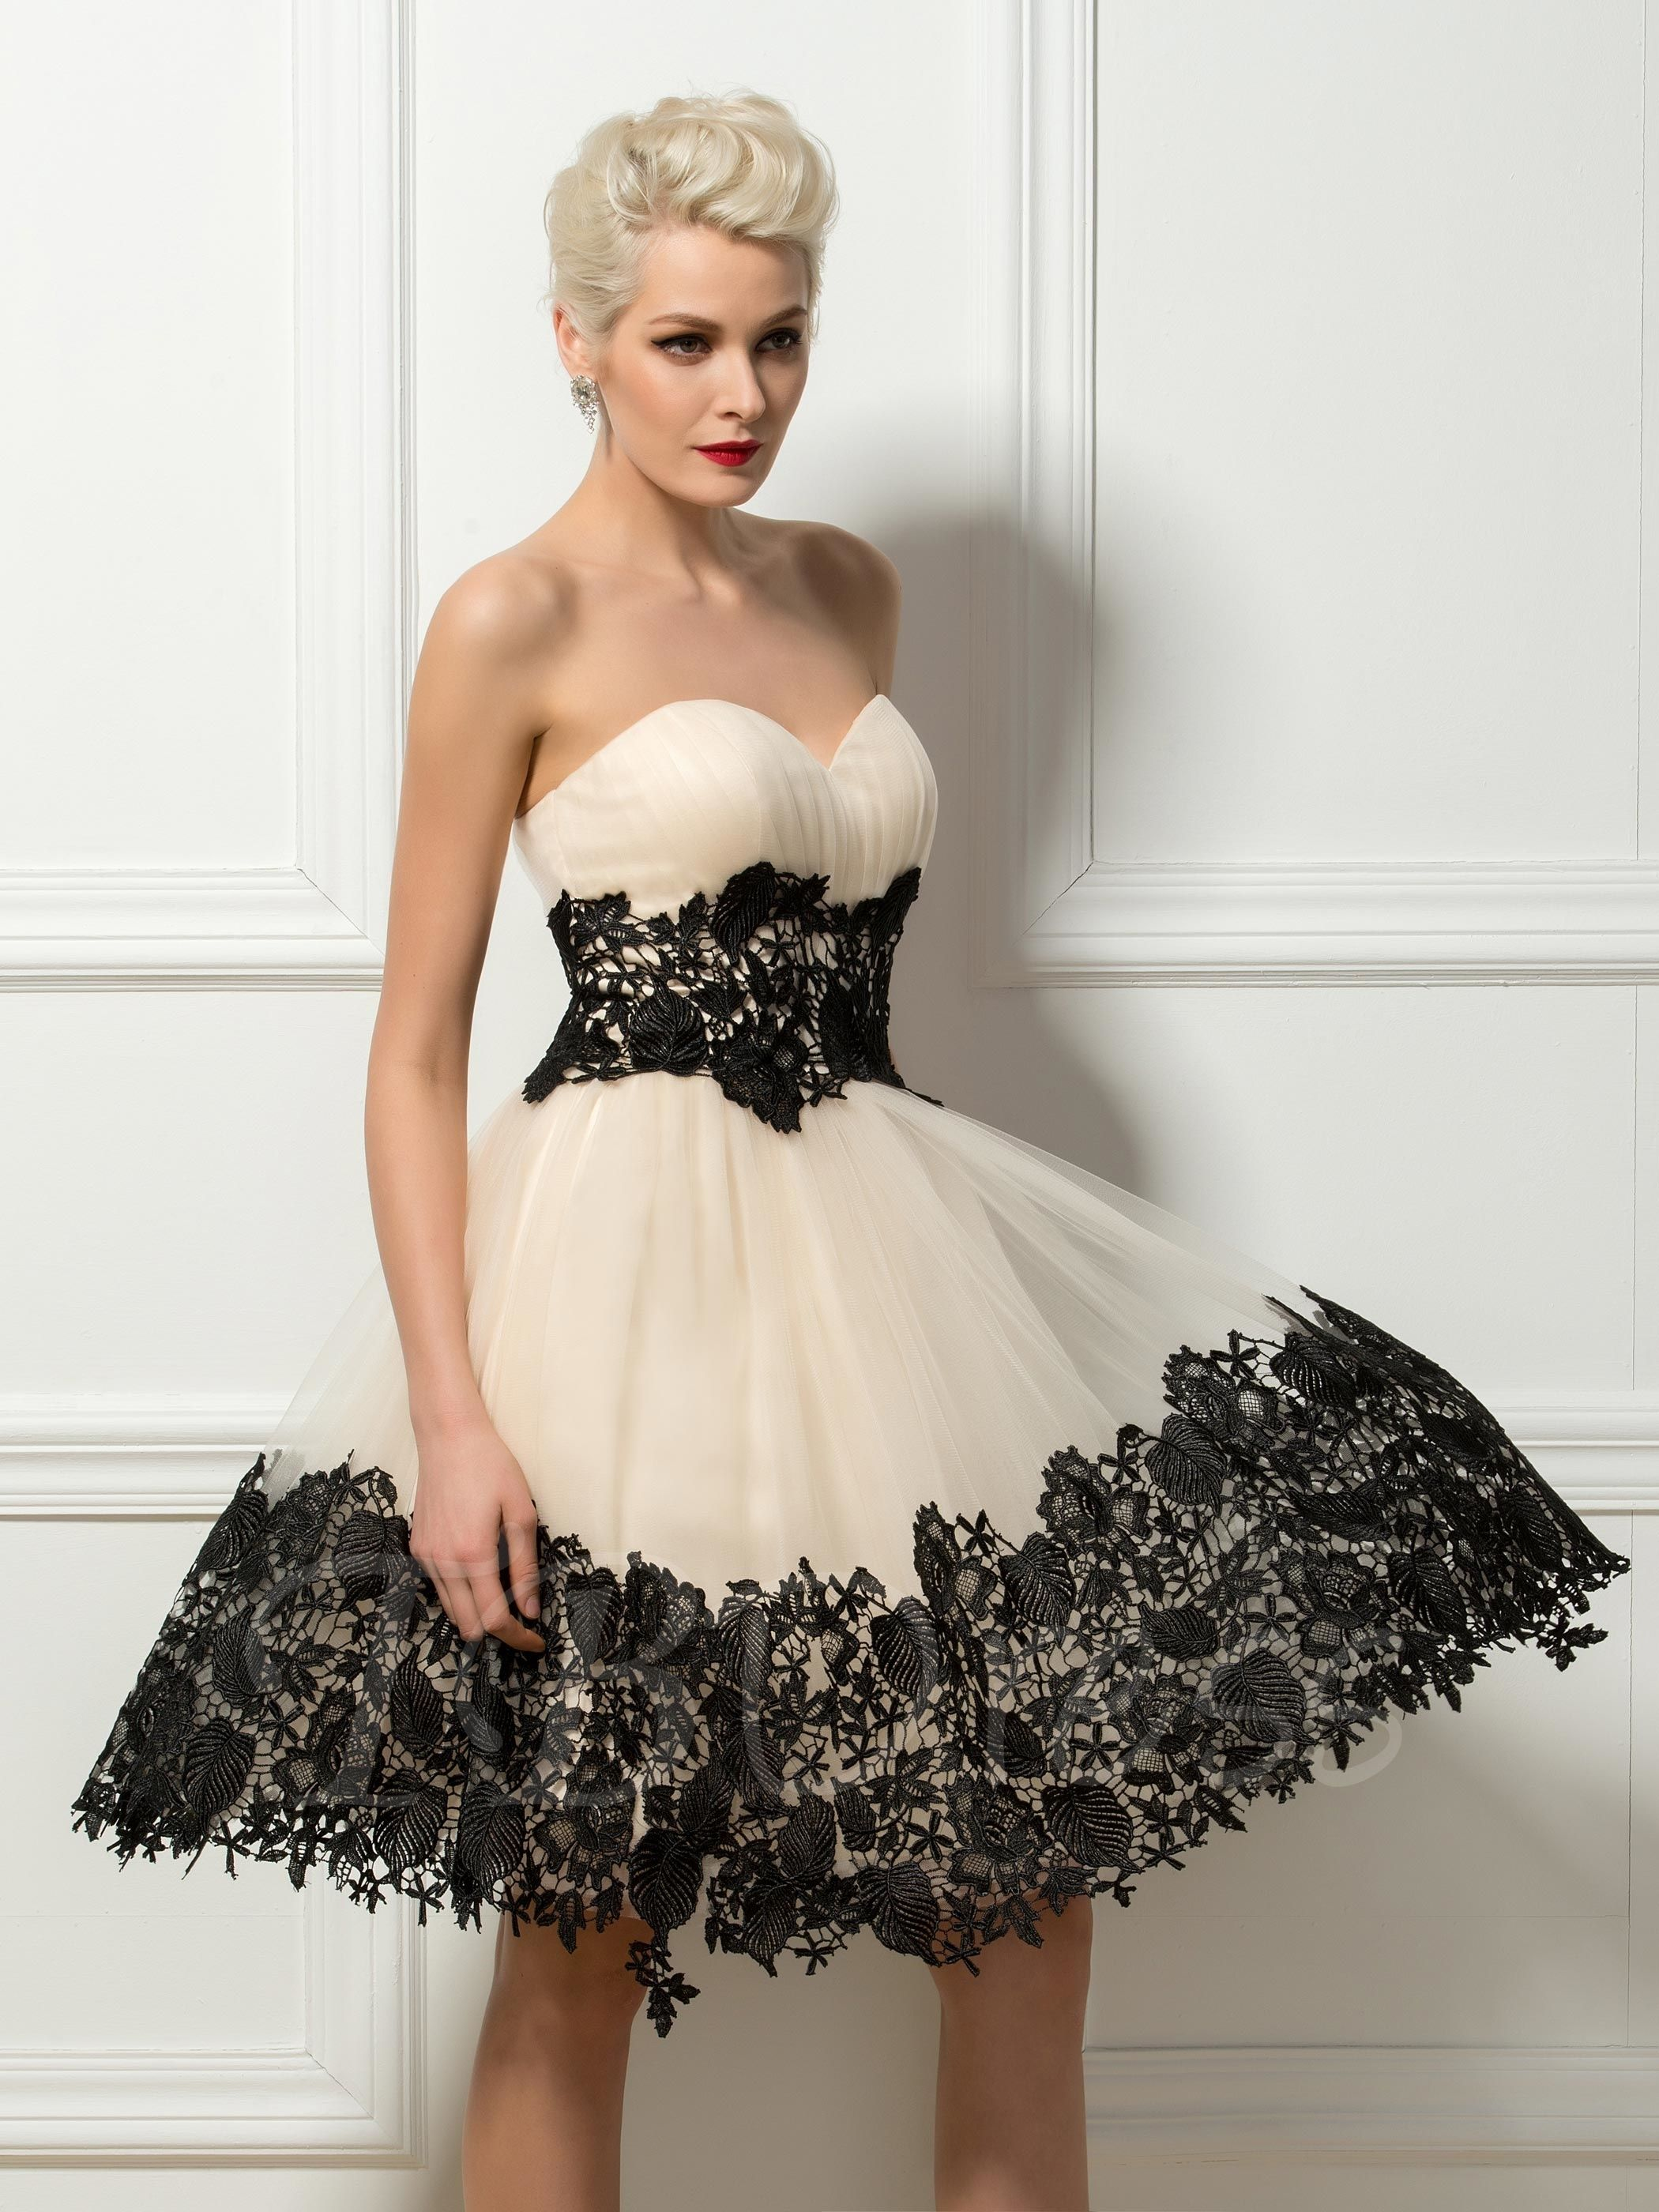 Strapless Sweetheart Lace Appliques Cocktail Dress | Applique ...